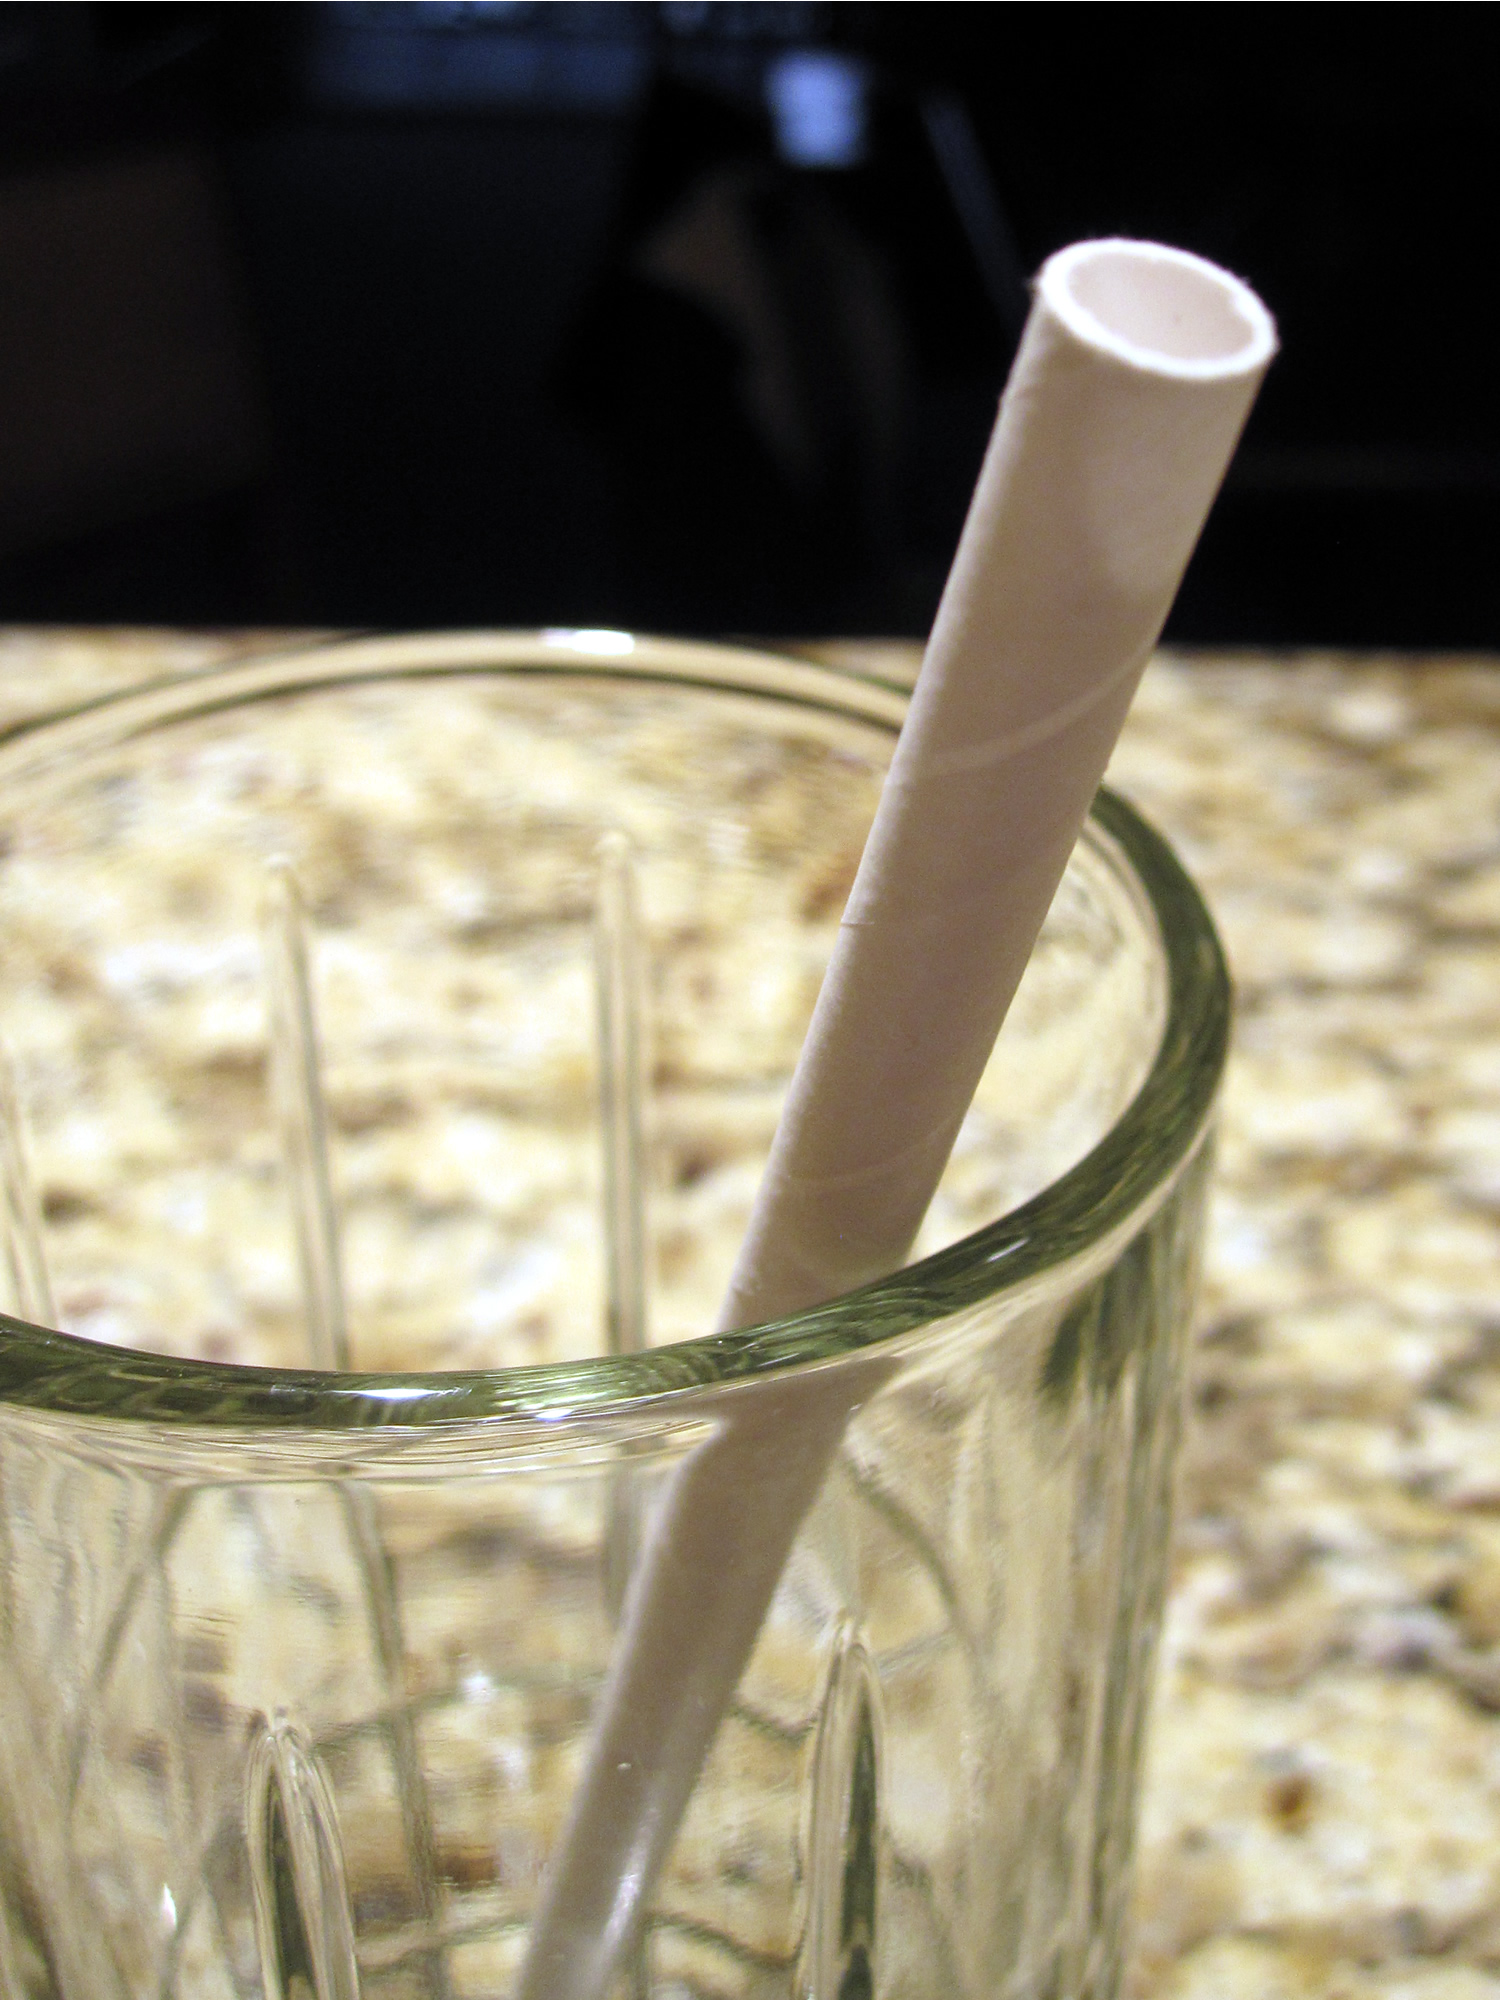 Things To Make With Drinking Straws